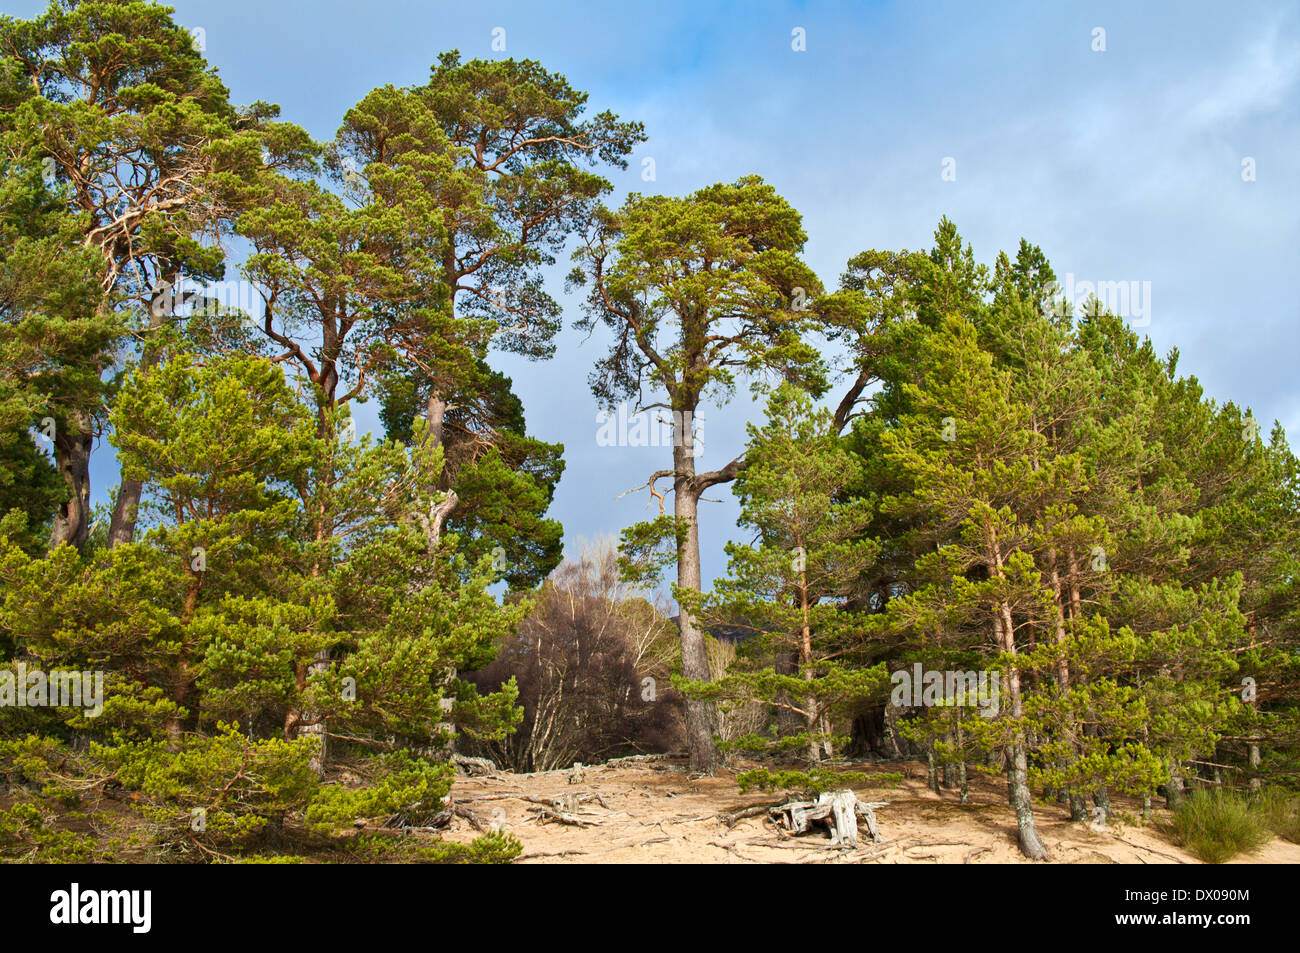 Scots Pine trees growing on sandy beach by Loch Morlich, near Aviemore, Cairngorms National Park, Scottish Highlands Scotland UK - Stock Image